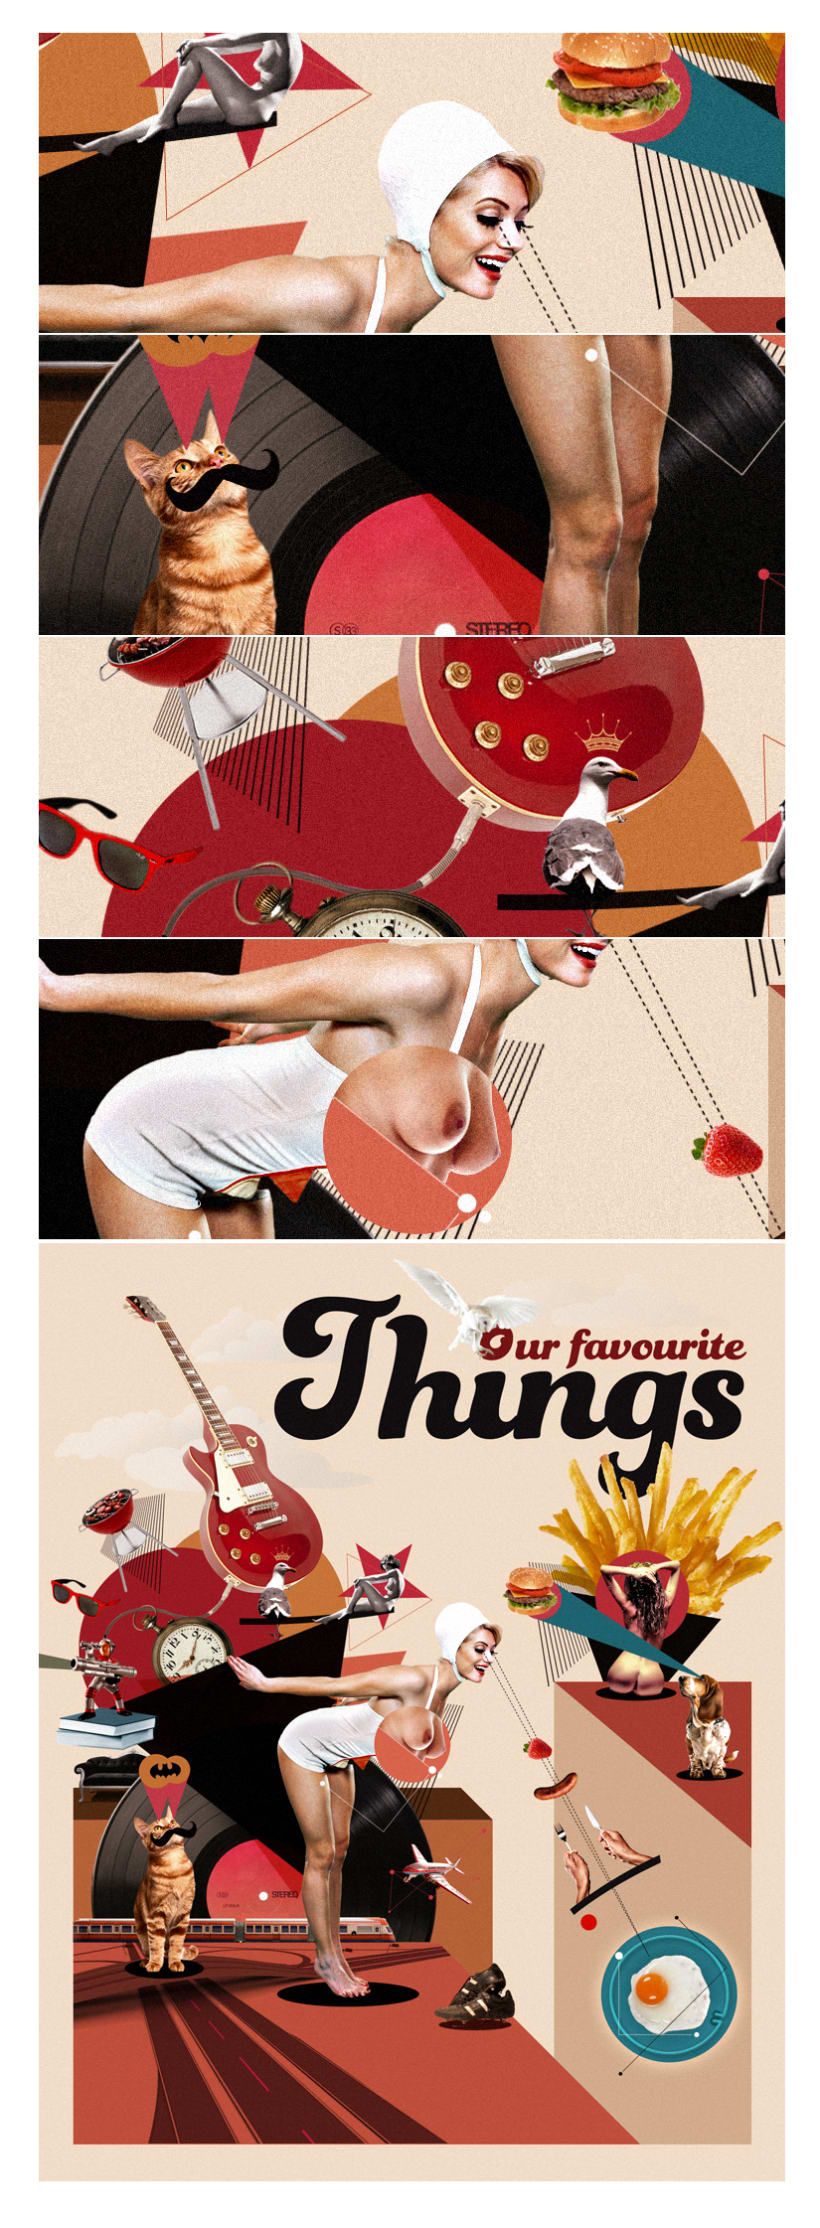 Our Favourite Things -1